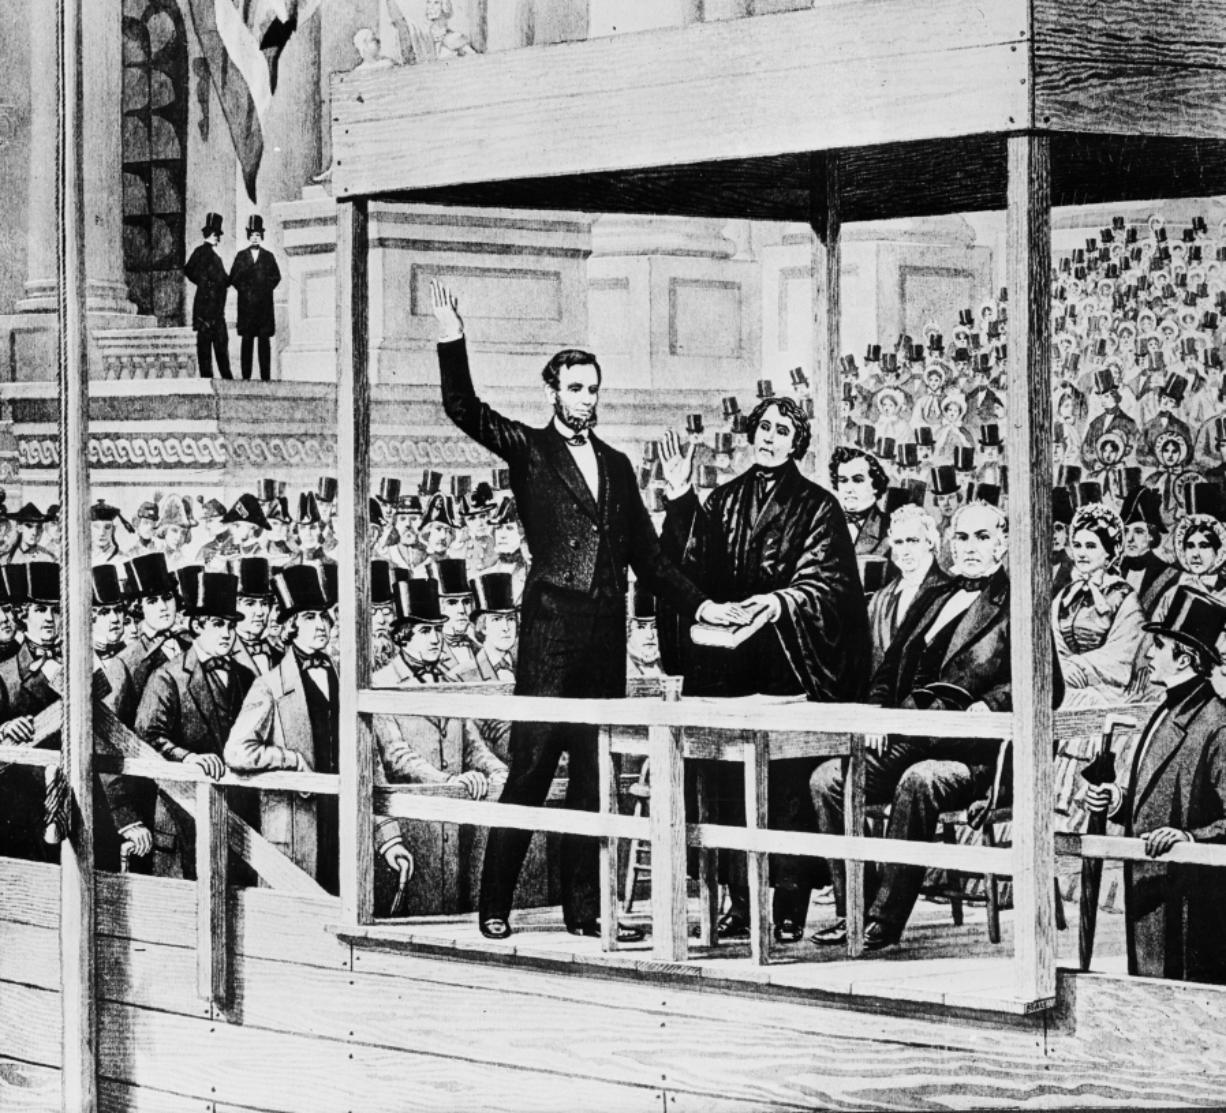 """FILE - This images shows a depiction of Abraham Lincoln taking the oath of office as the 16th president of the United States administered by Chief Justice Roger B. Taney in front of the U.S. Capitol in Washington, on March 4, 1861. Historians cite the first inaugural speeches of Thomas Jefferson and Abraham Lincoln as possible parallels for Joe Biden, who has said his goal is to """"restore the soul"""" of the country even as millions baselessly insist incumbent Donald Trump was the winner."""